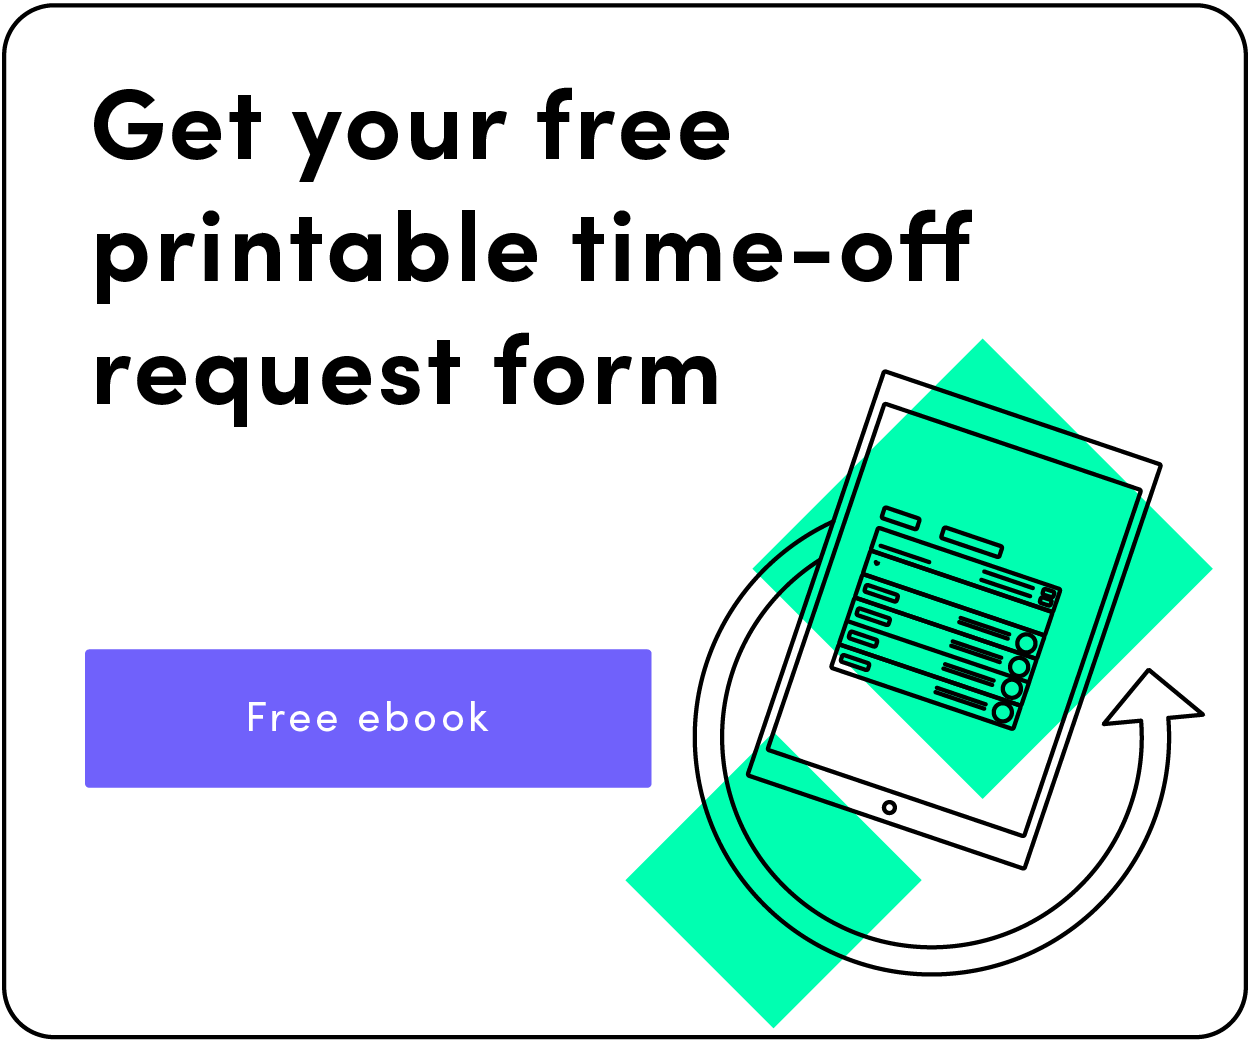 free time-off request form